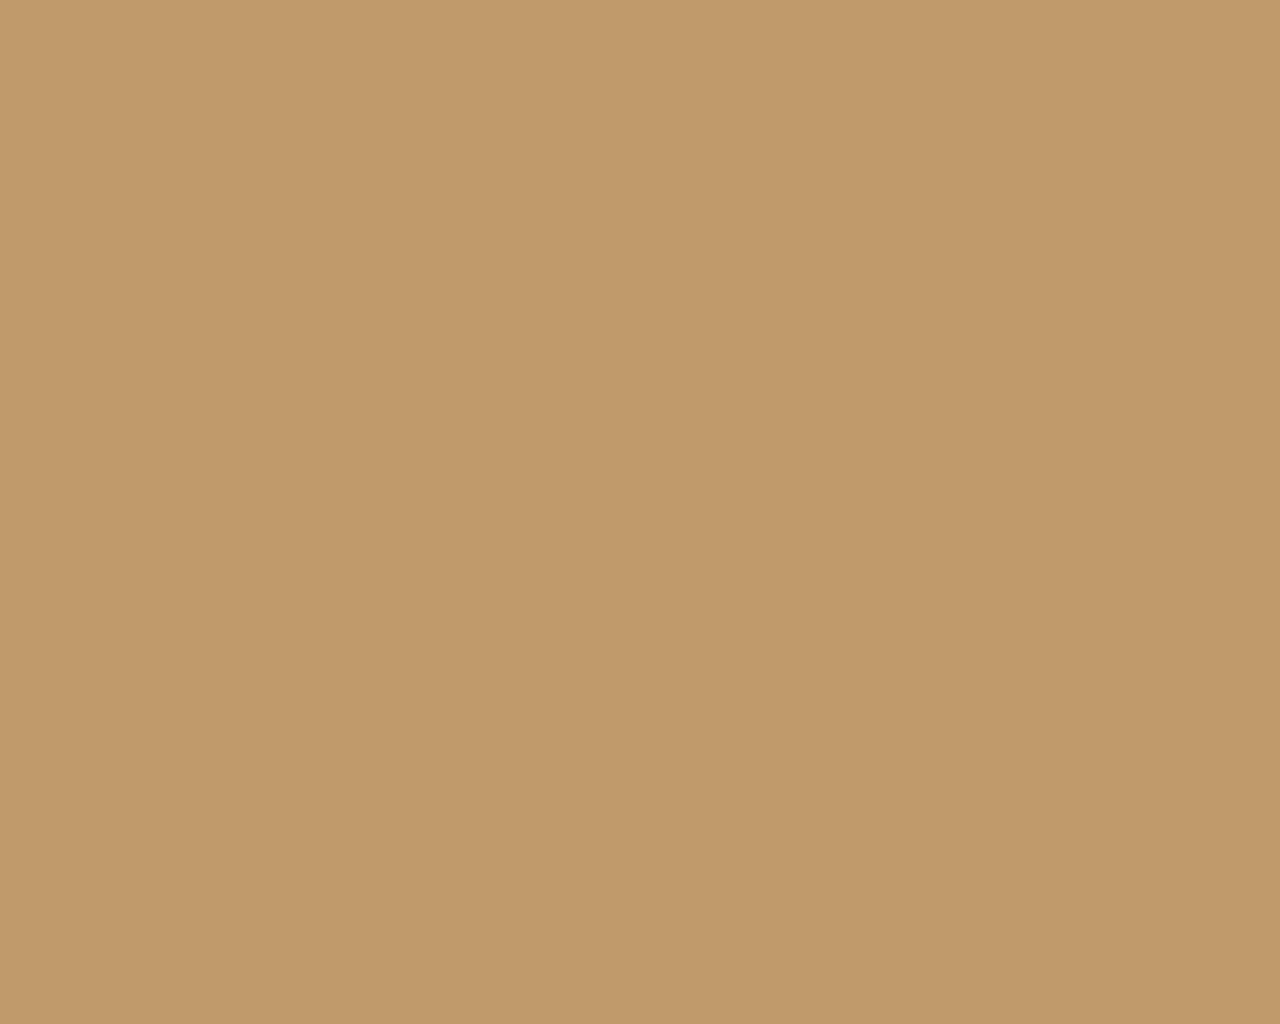 1280x1024 Wood Brown Solid Color Background